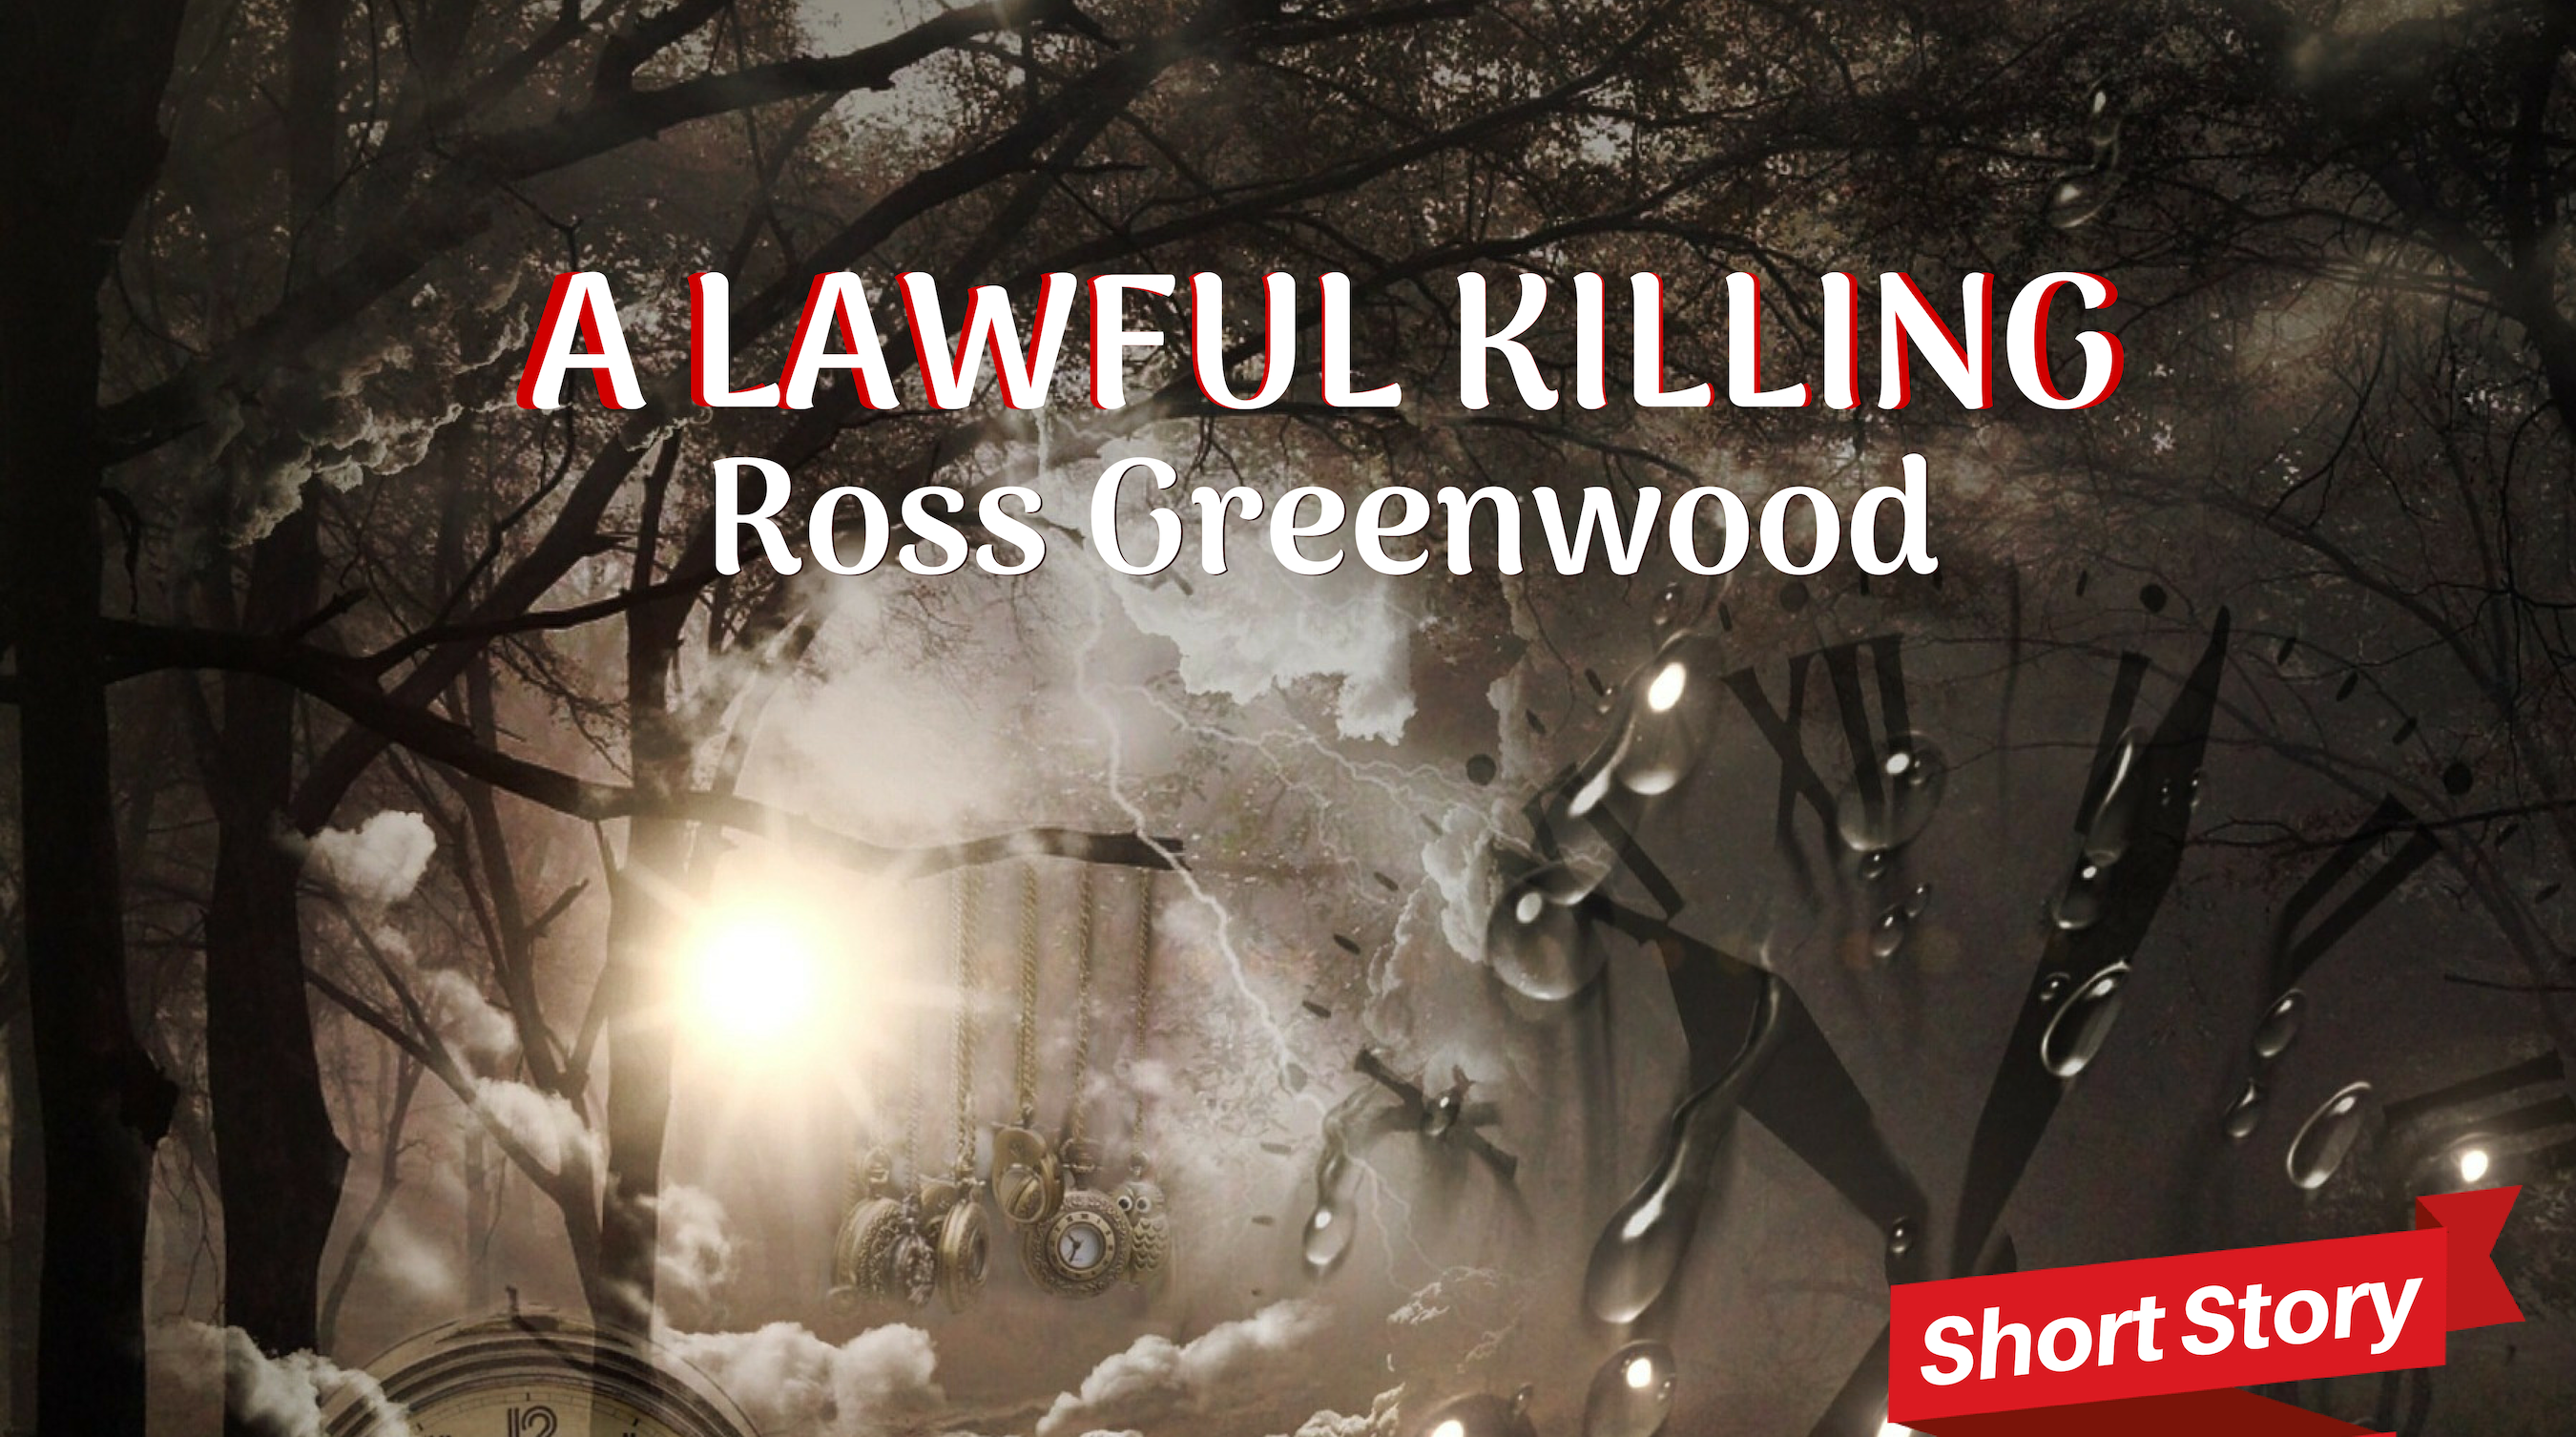 A Lawful Killing - Ross Greenwood Short Story Image